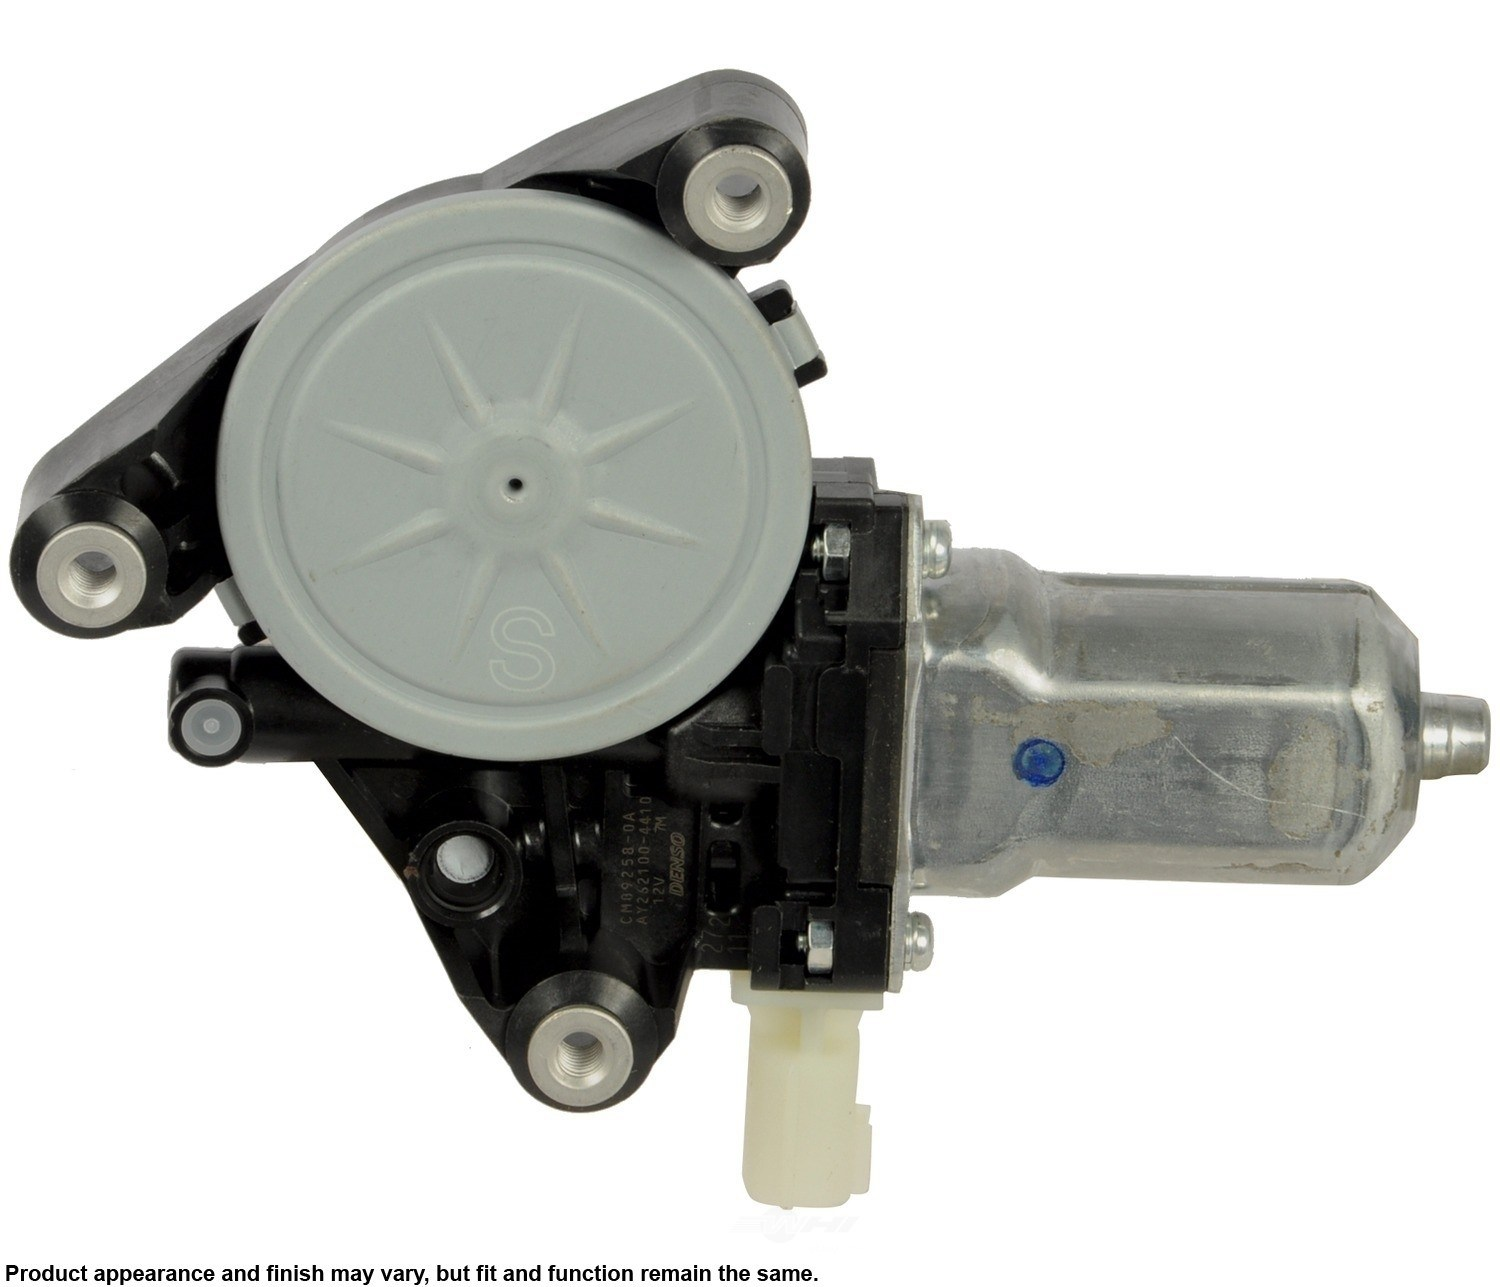 CARDONE NEW - Power Window Motor (Rear Left) - A1S 82-30009